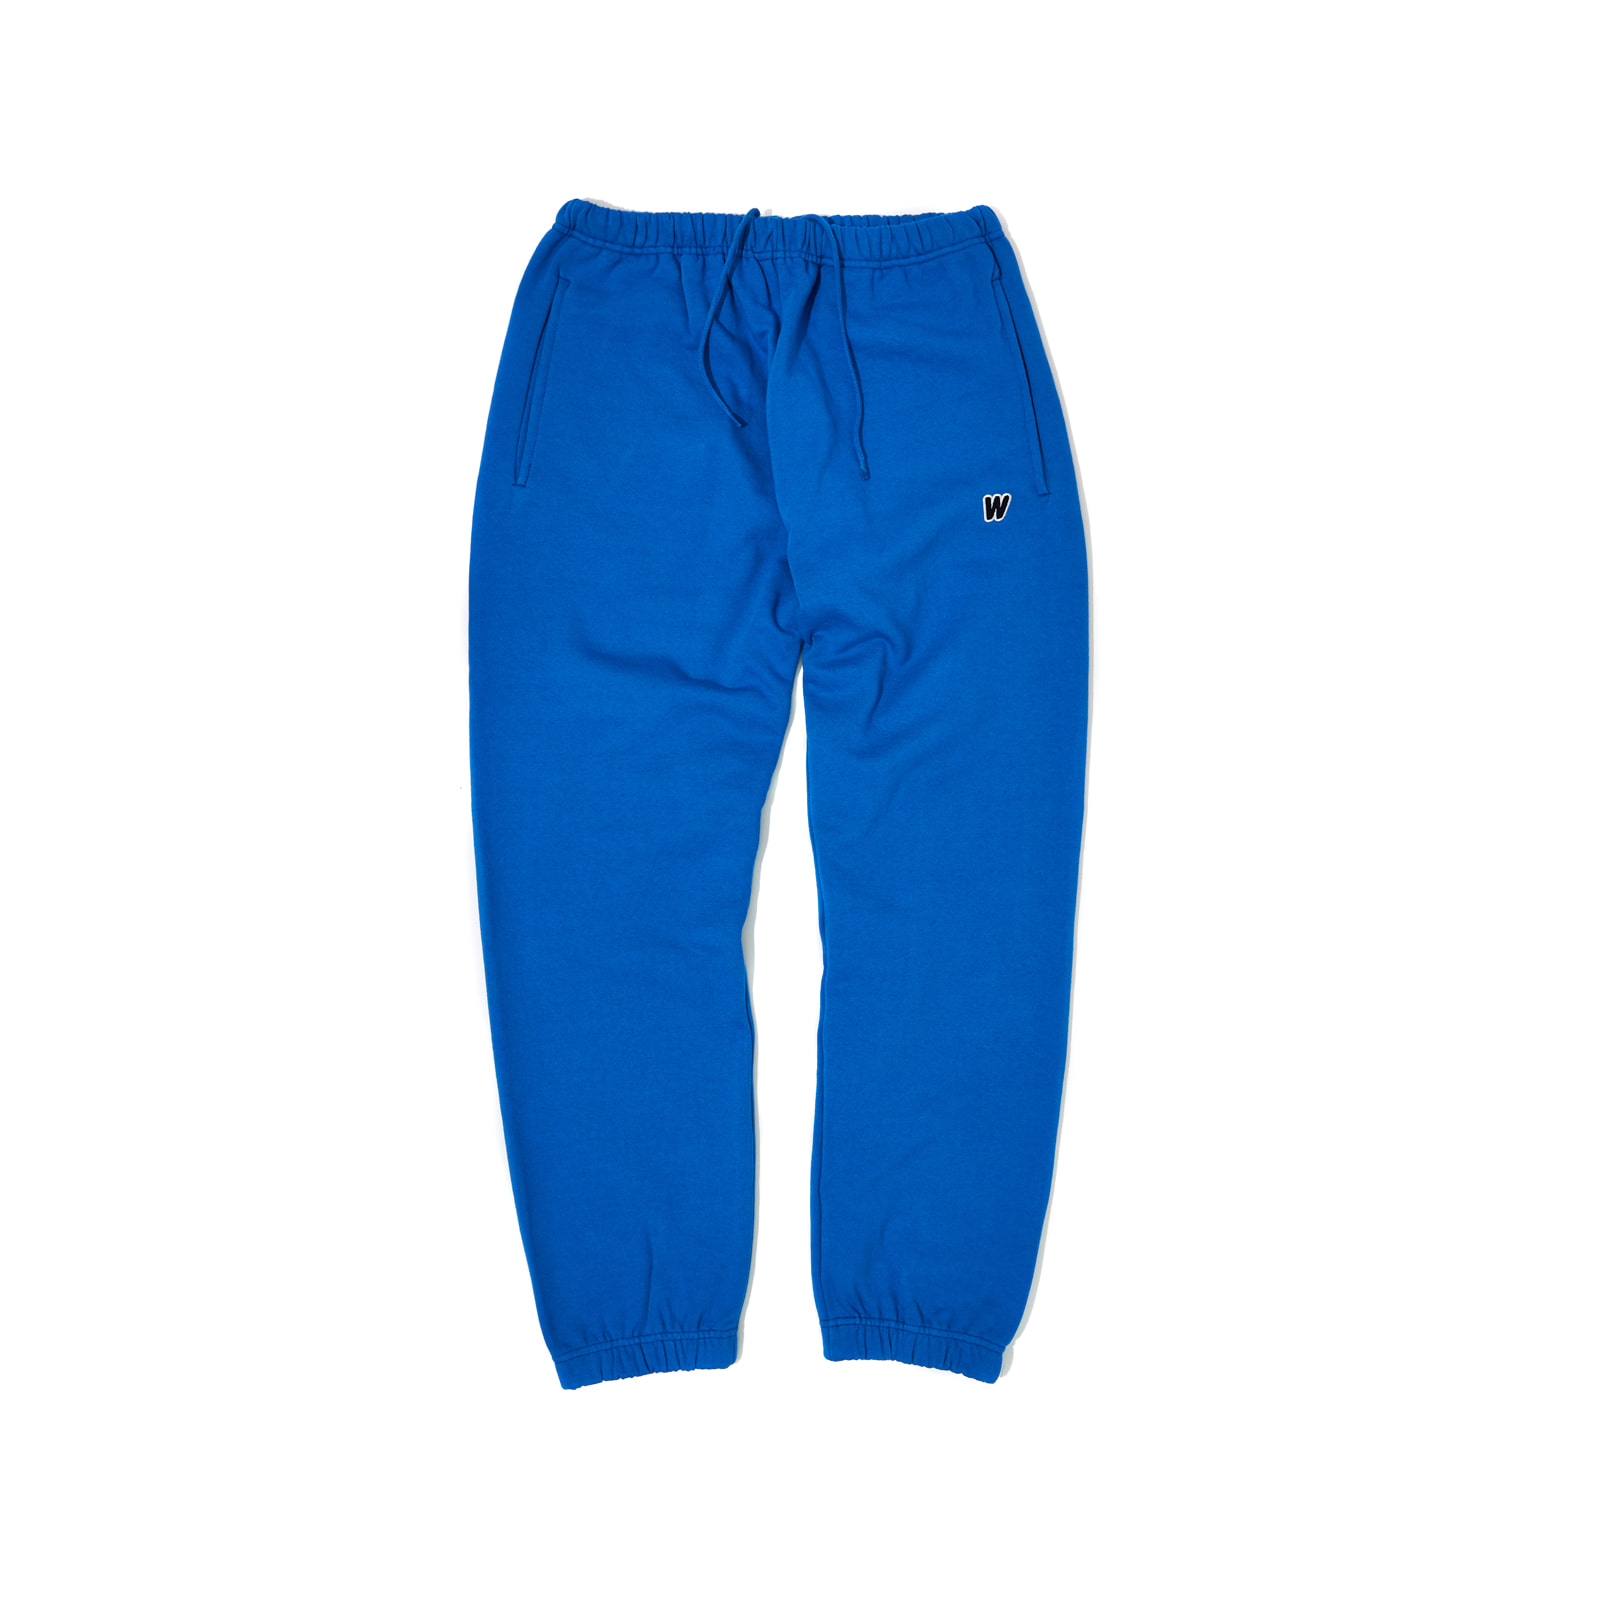 W LOGO SWEAT PANTS (BLUE)